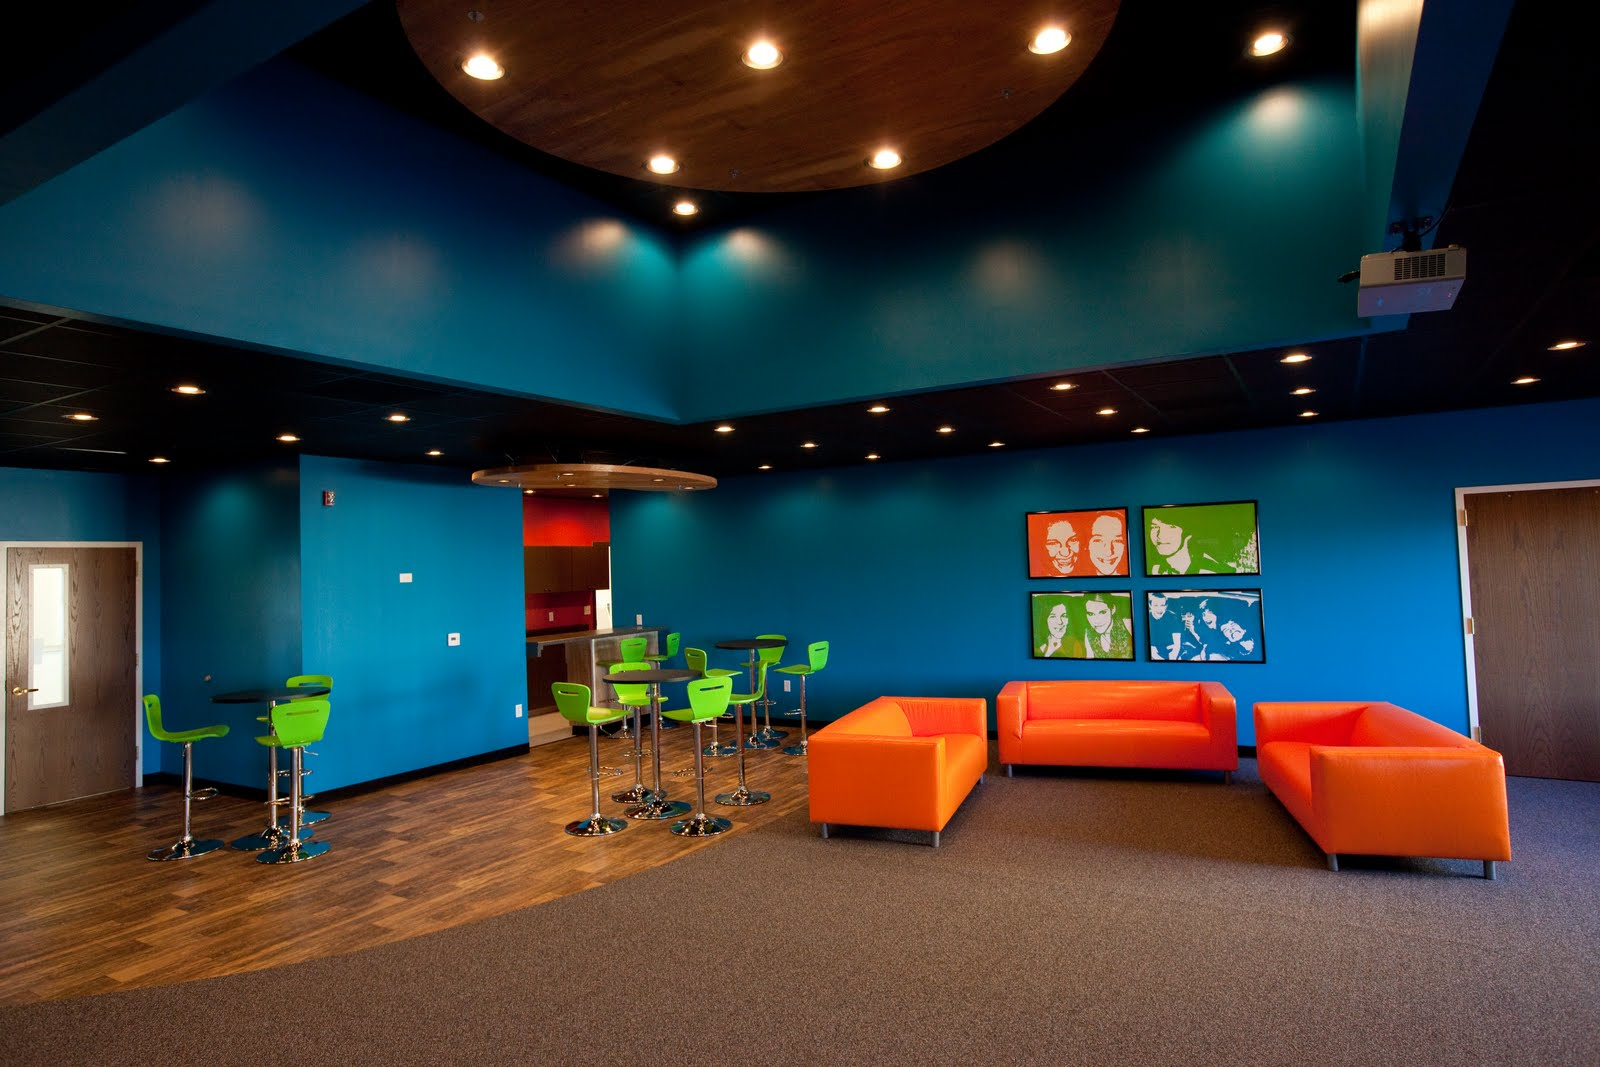 youth room decoration ideas youth ministry ideas 99 youth room decoration ideas youth ministry ideas youth ministry rec rooms and youth groups